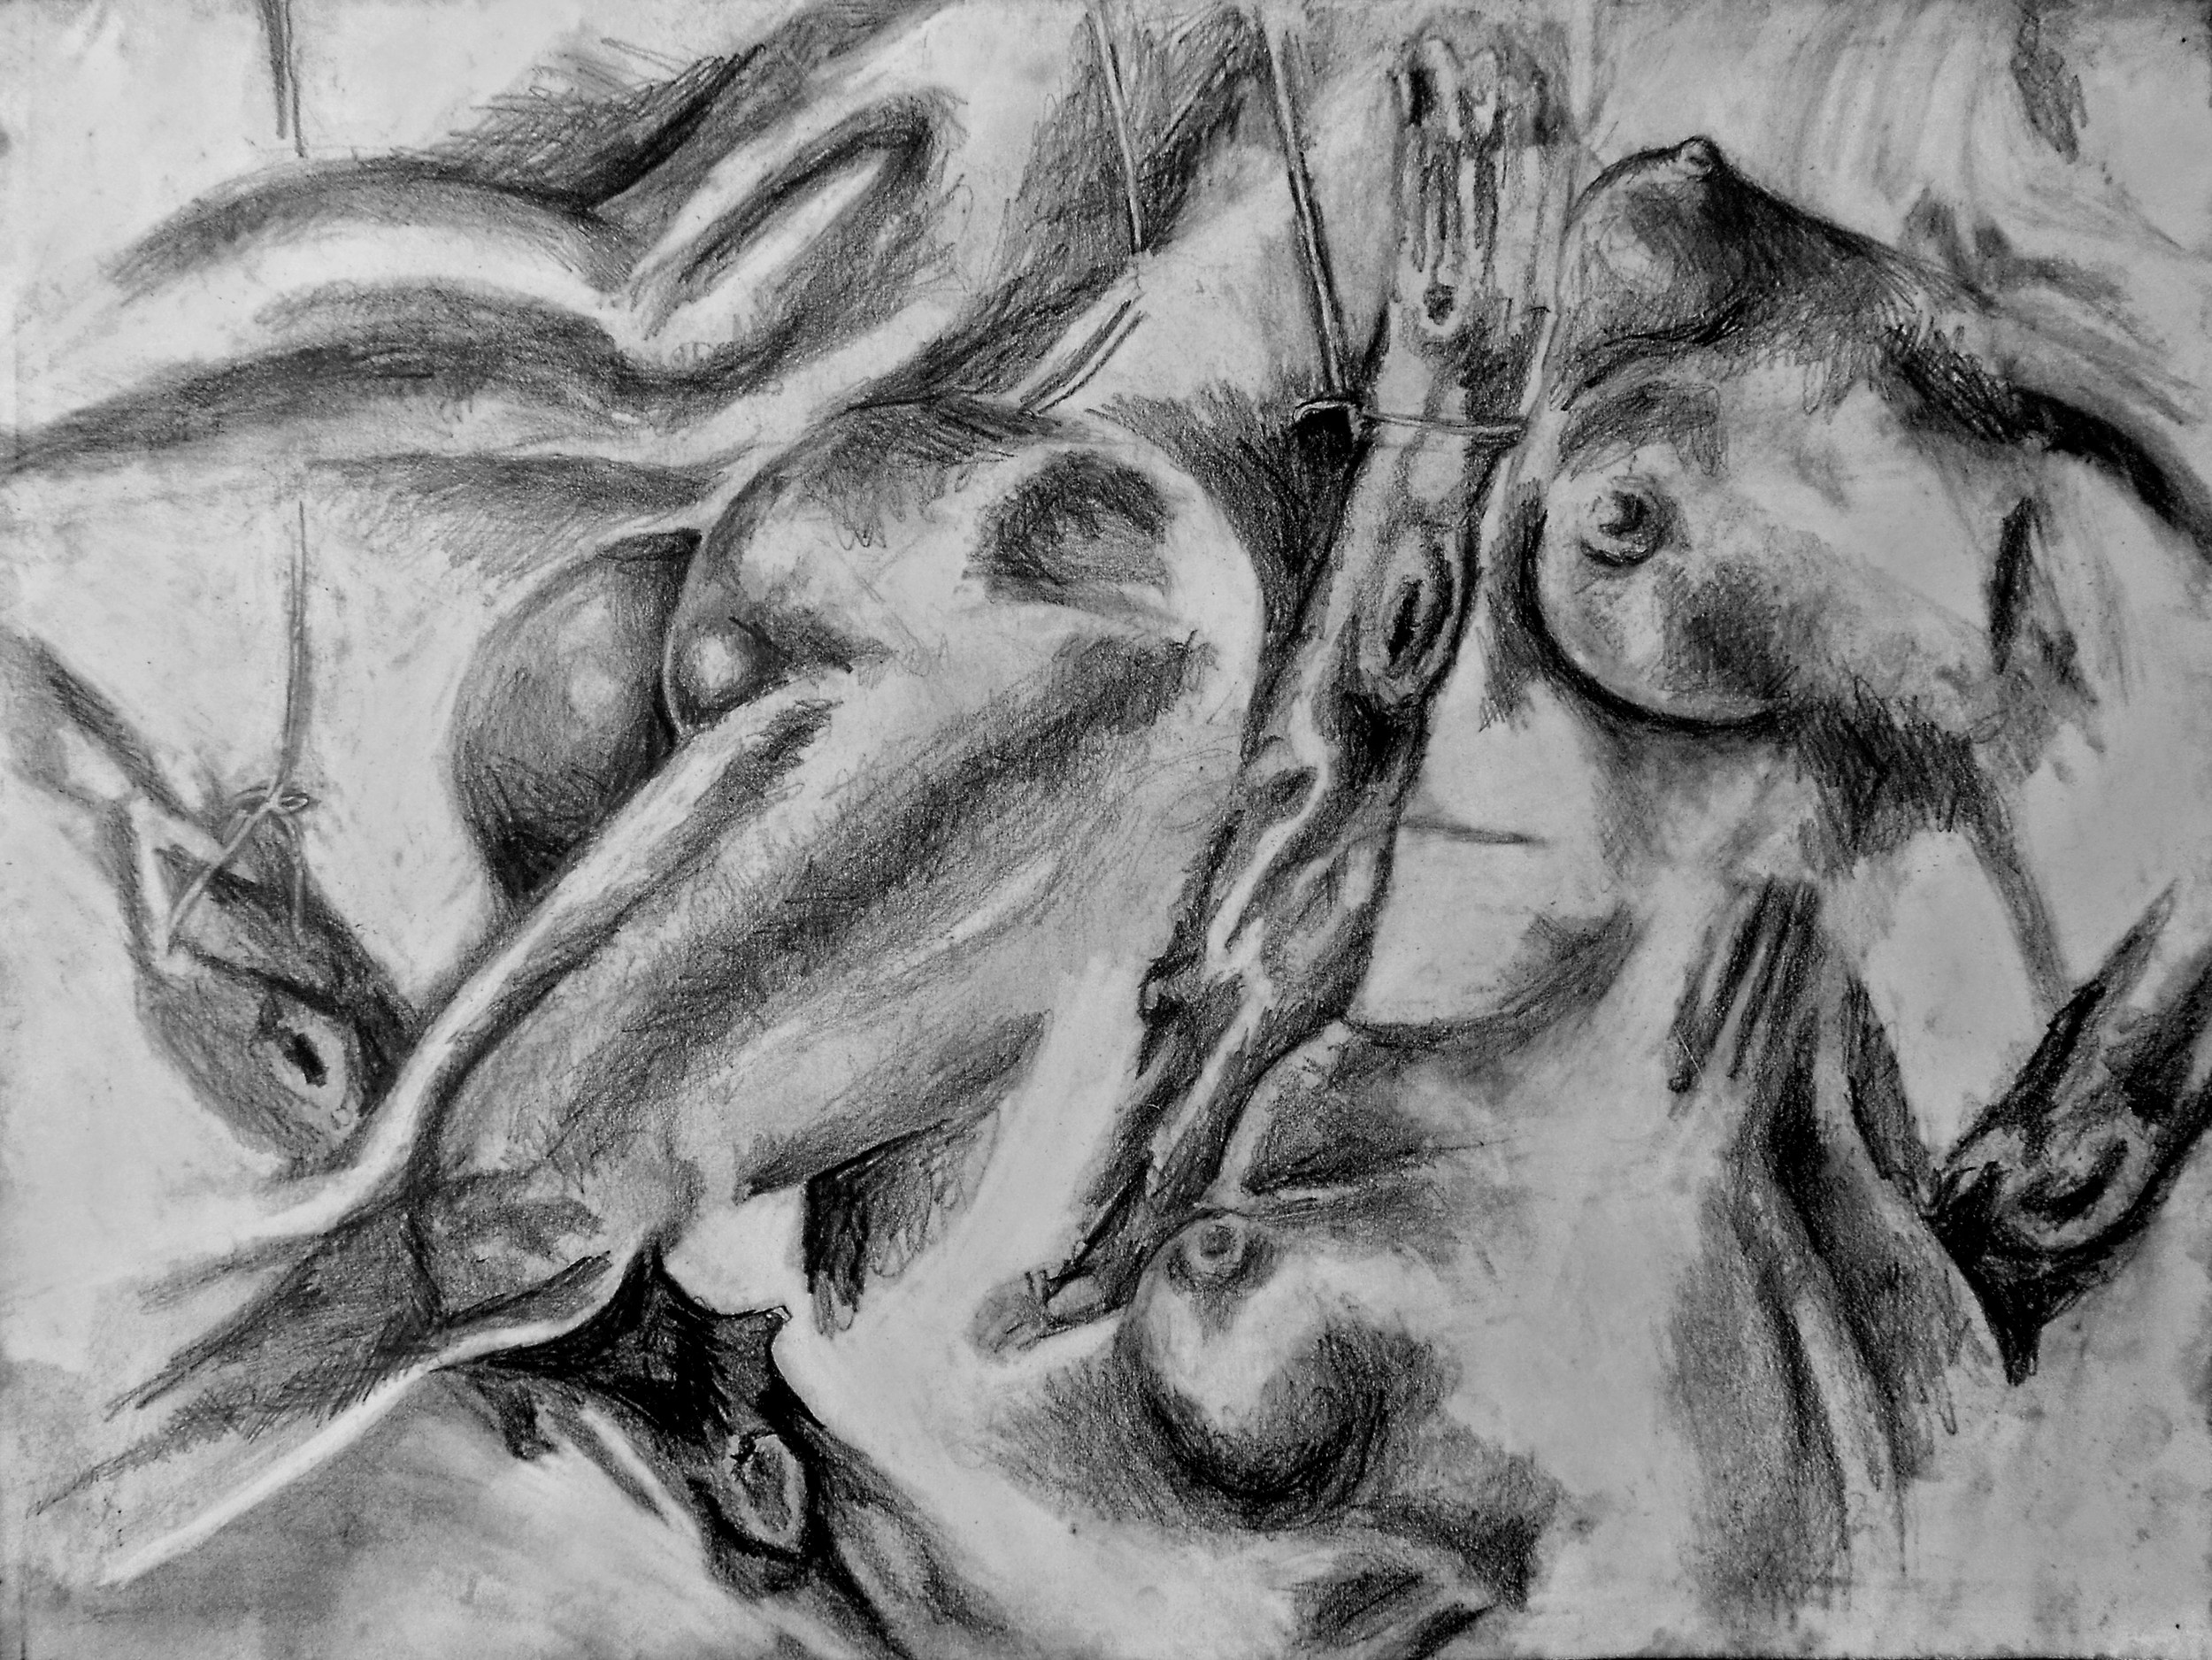 What it initially looked like before - A charcoal sketch of inanimate objects visually arranged by my imagination